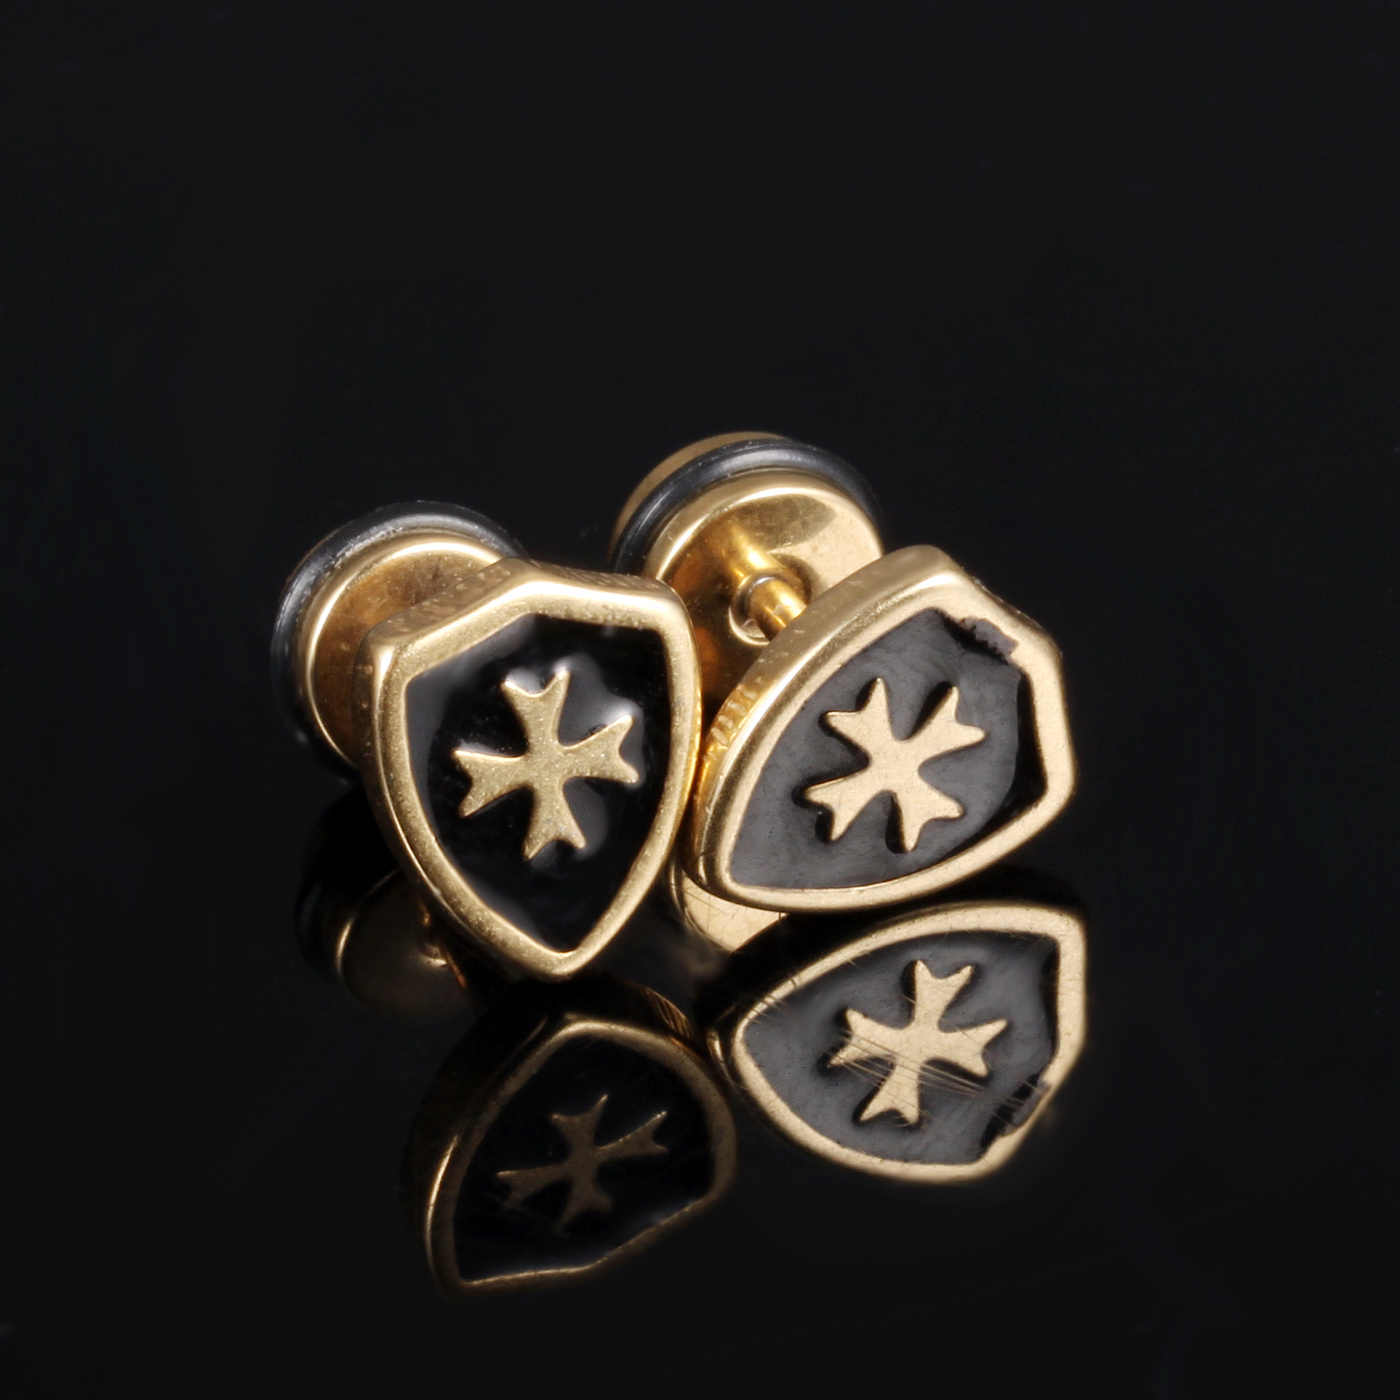 samll Cool Man Cross Stud Earrings For Men Punk Style Gold Ptelad Stainless Steel Earring Fashion Men's Jewelry Anti-allergy